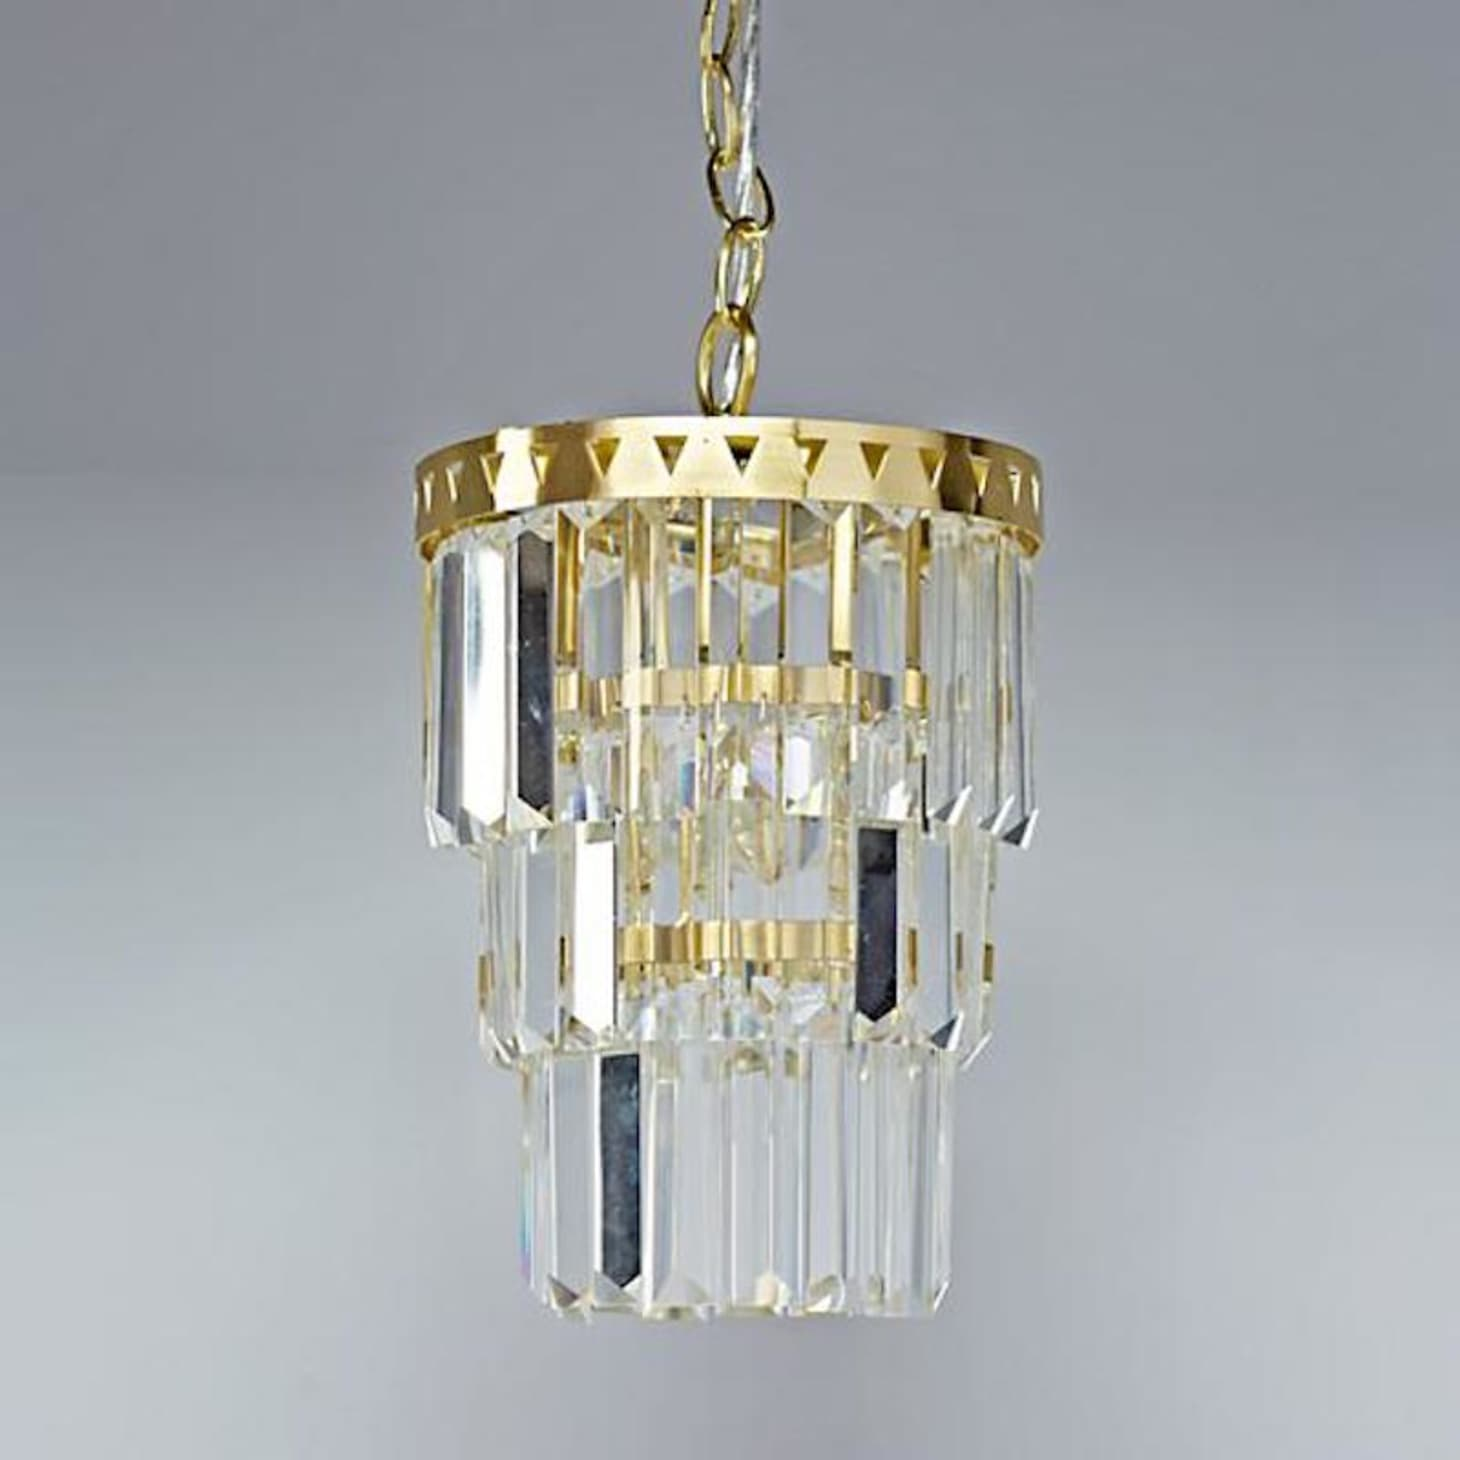 10 Mini Chandeliers for Small Spaces: Annual Guide ...